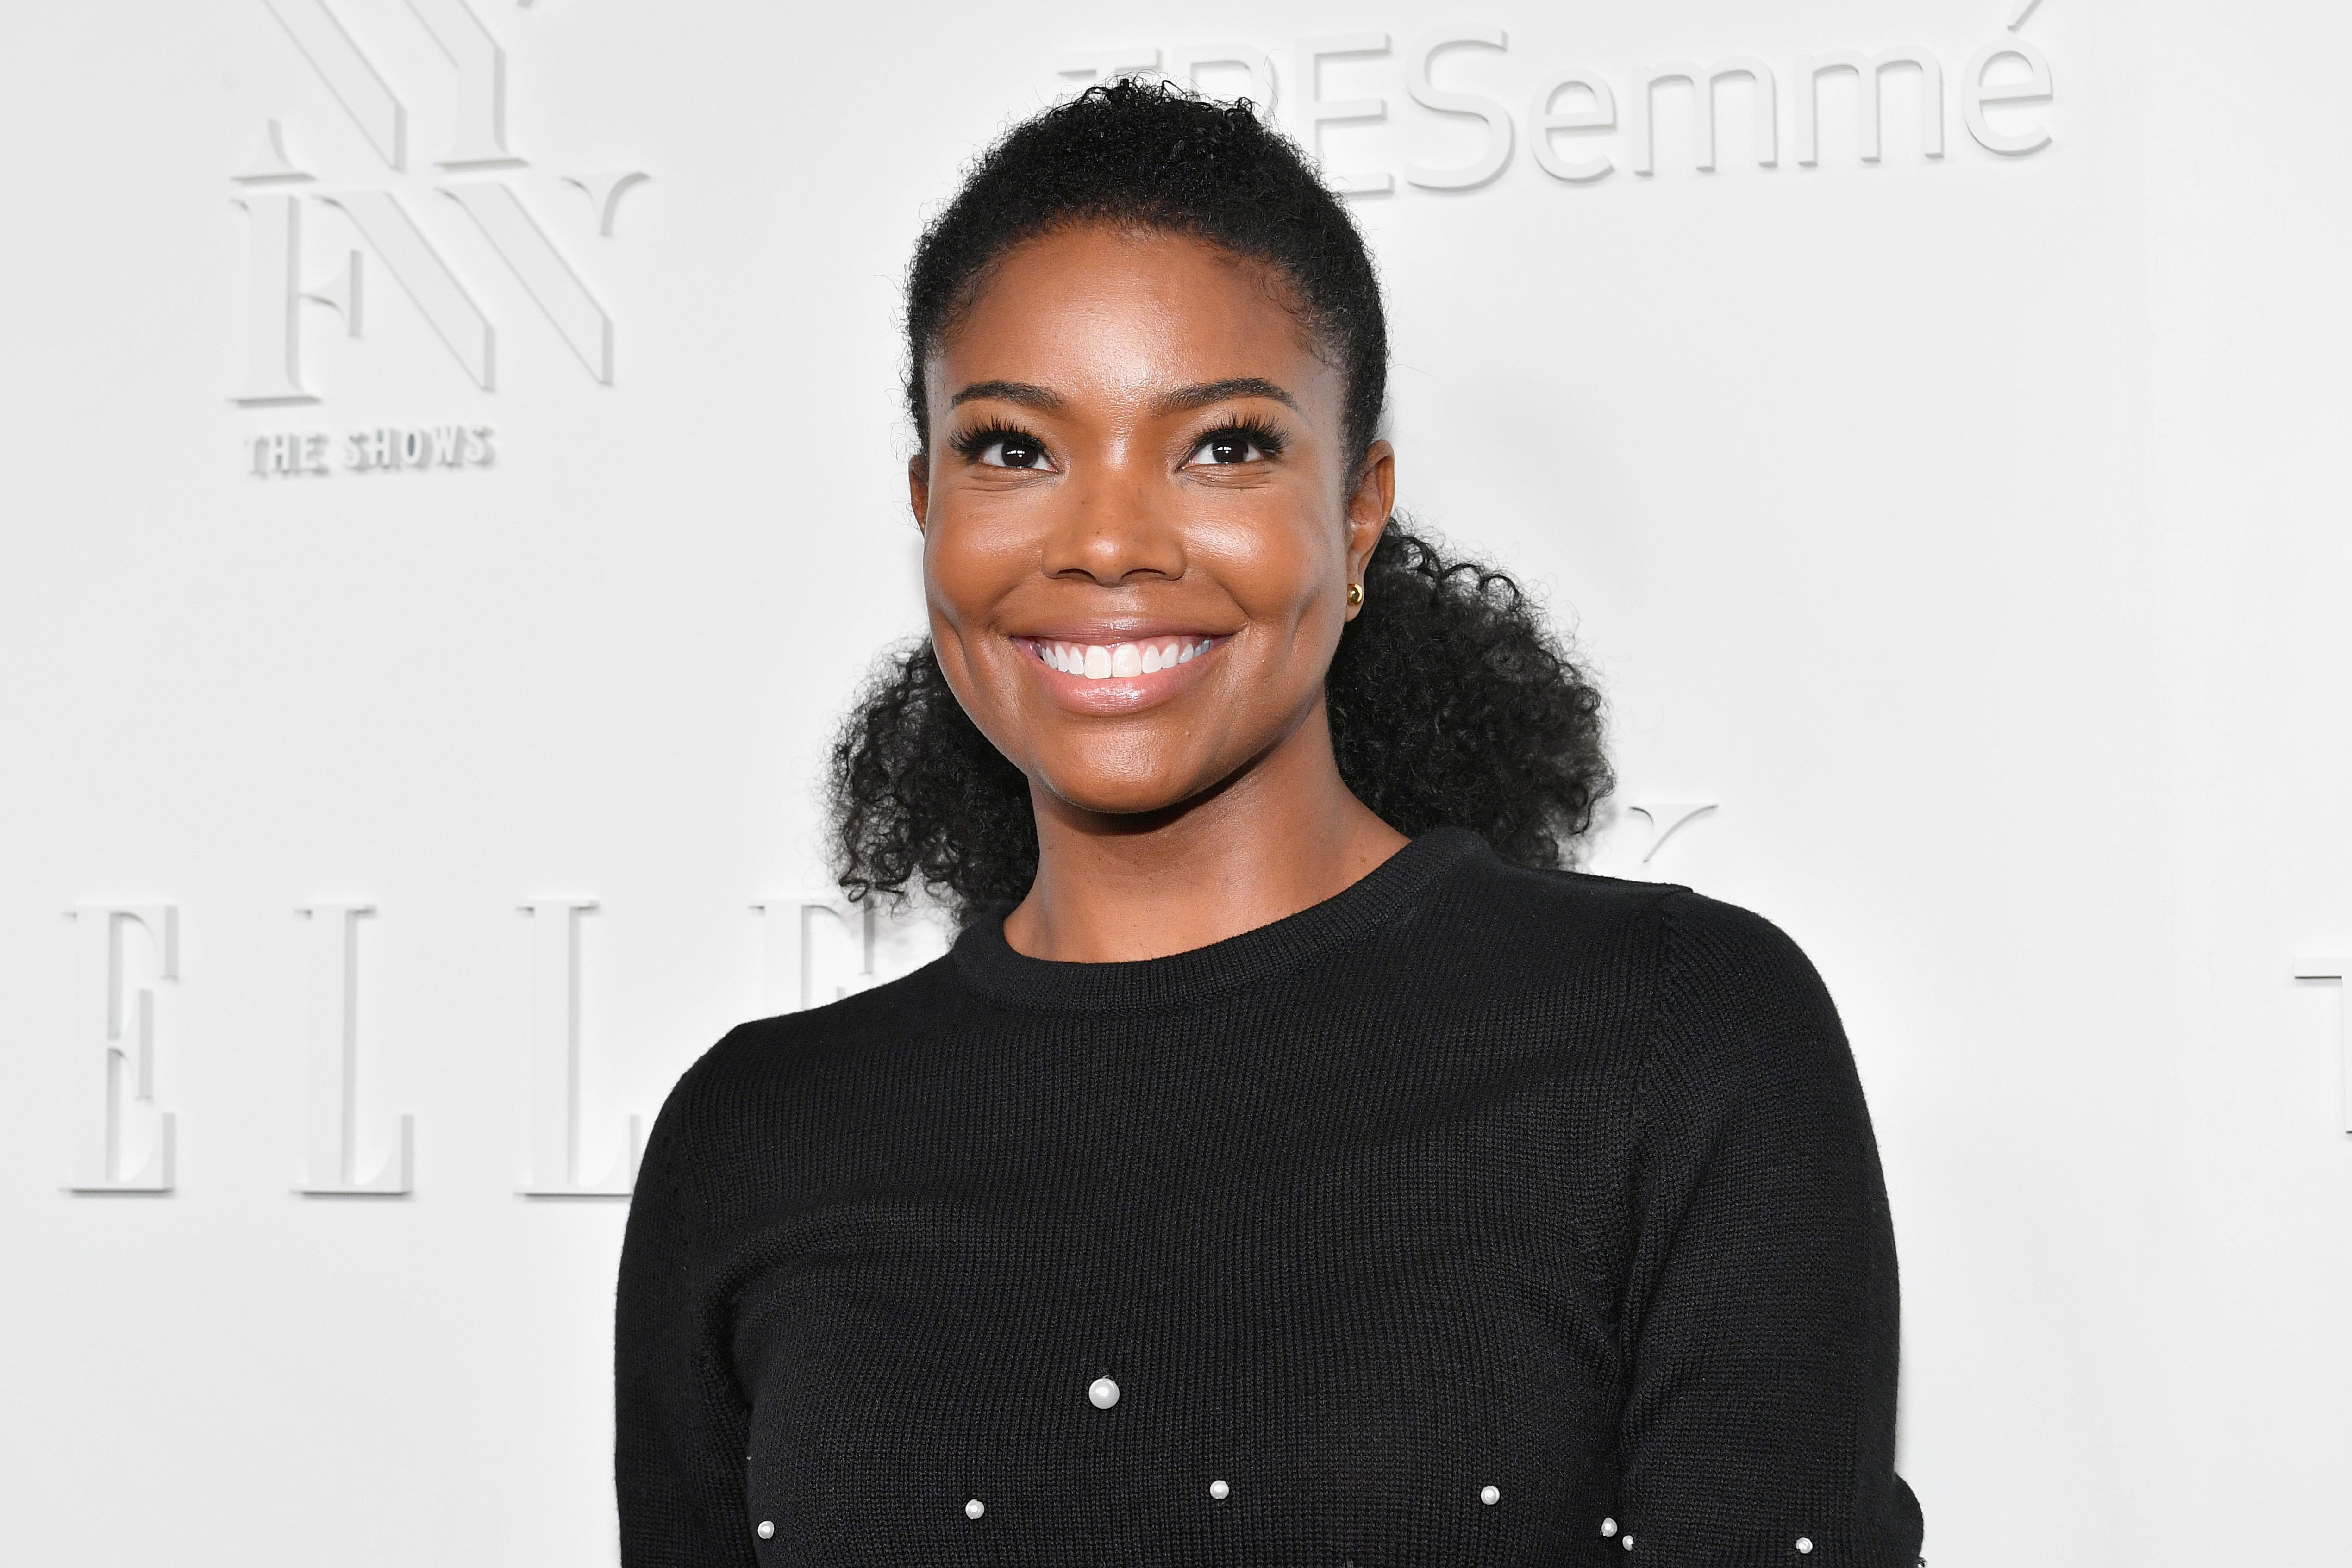 Gabrielle Union smiling at an event